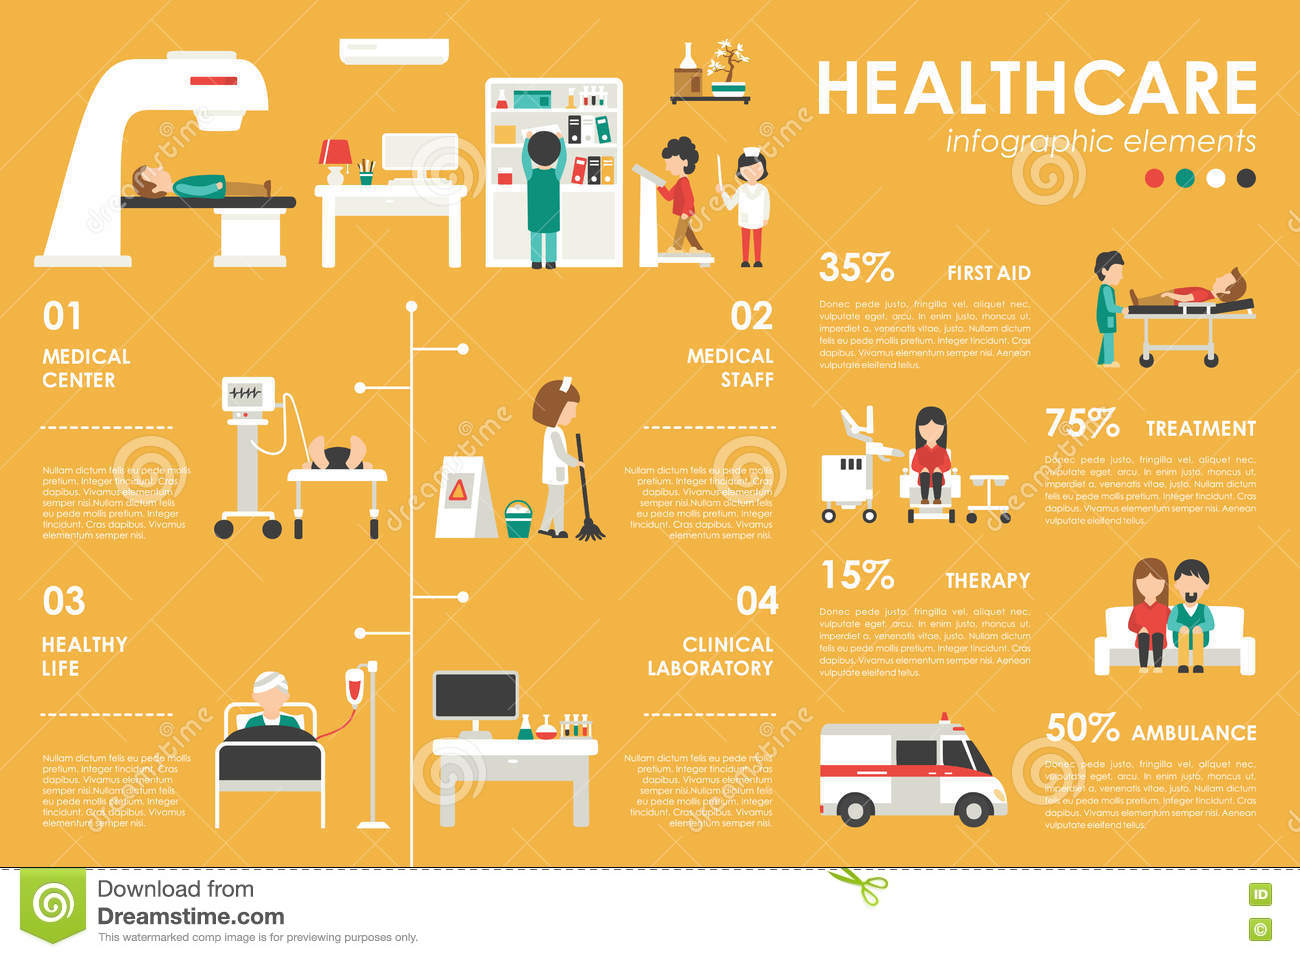 Infographic images healthcare buildings